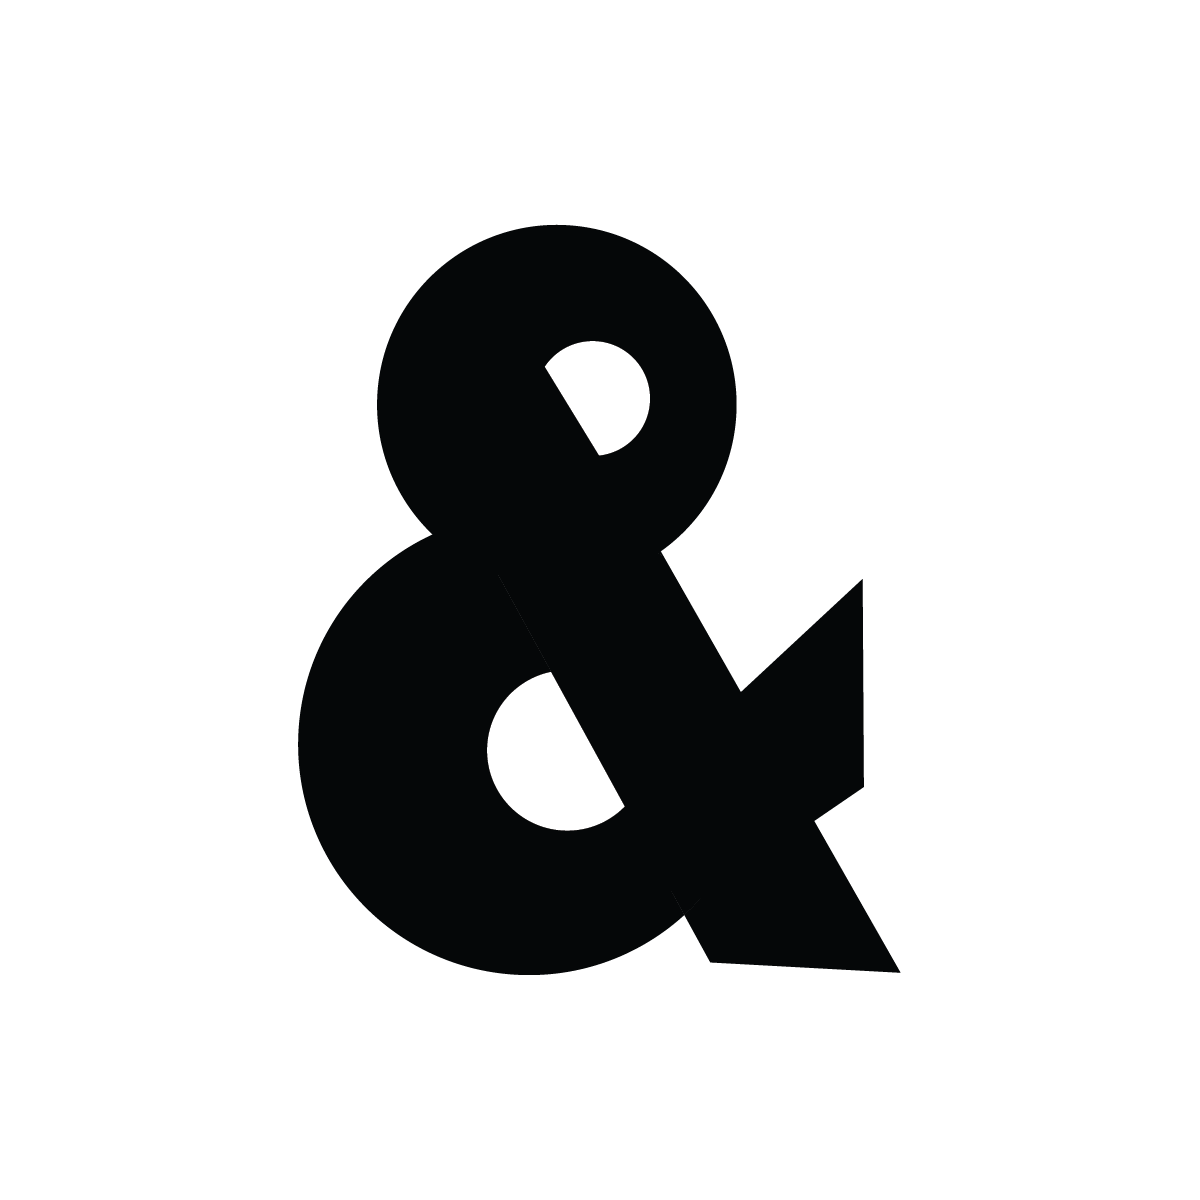 HD_Ampersand-126-20